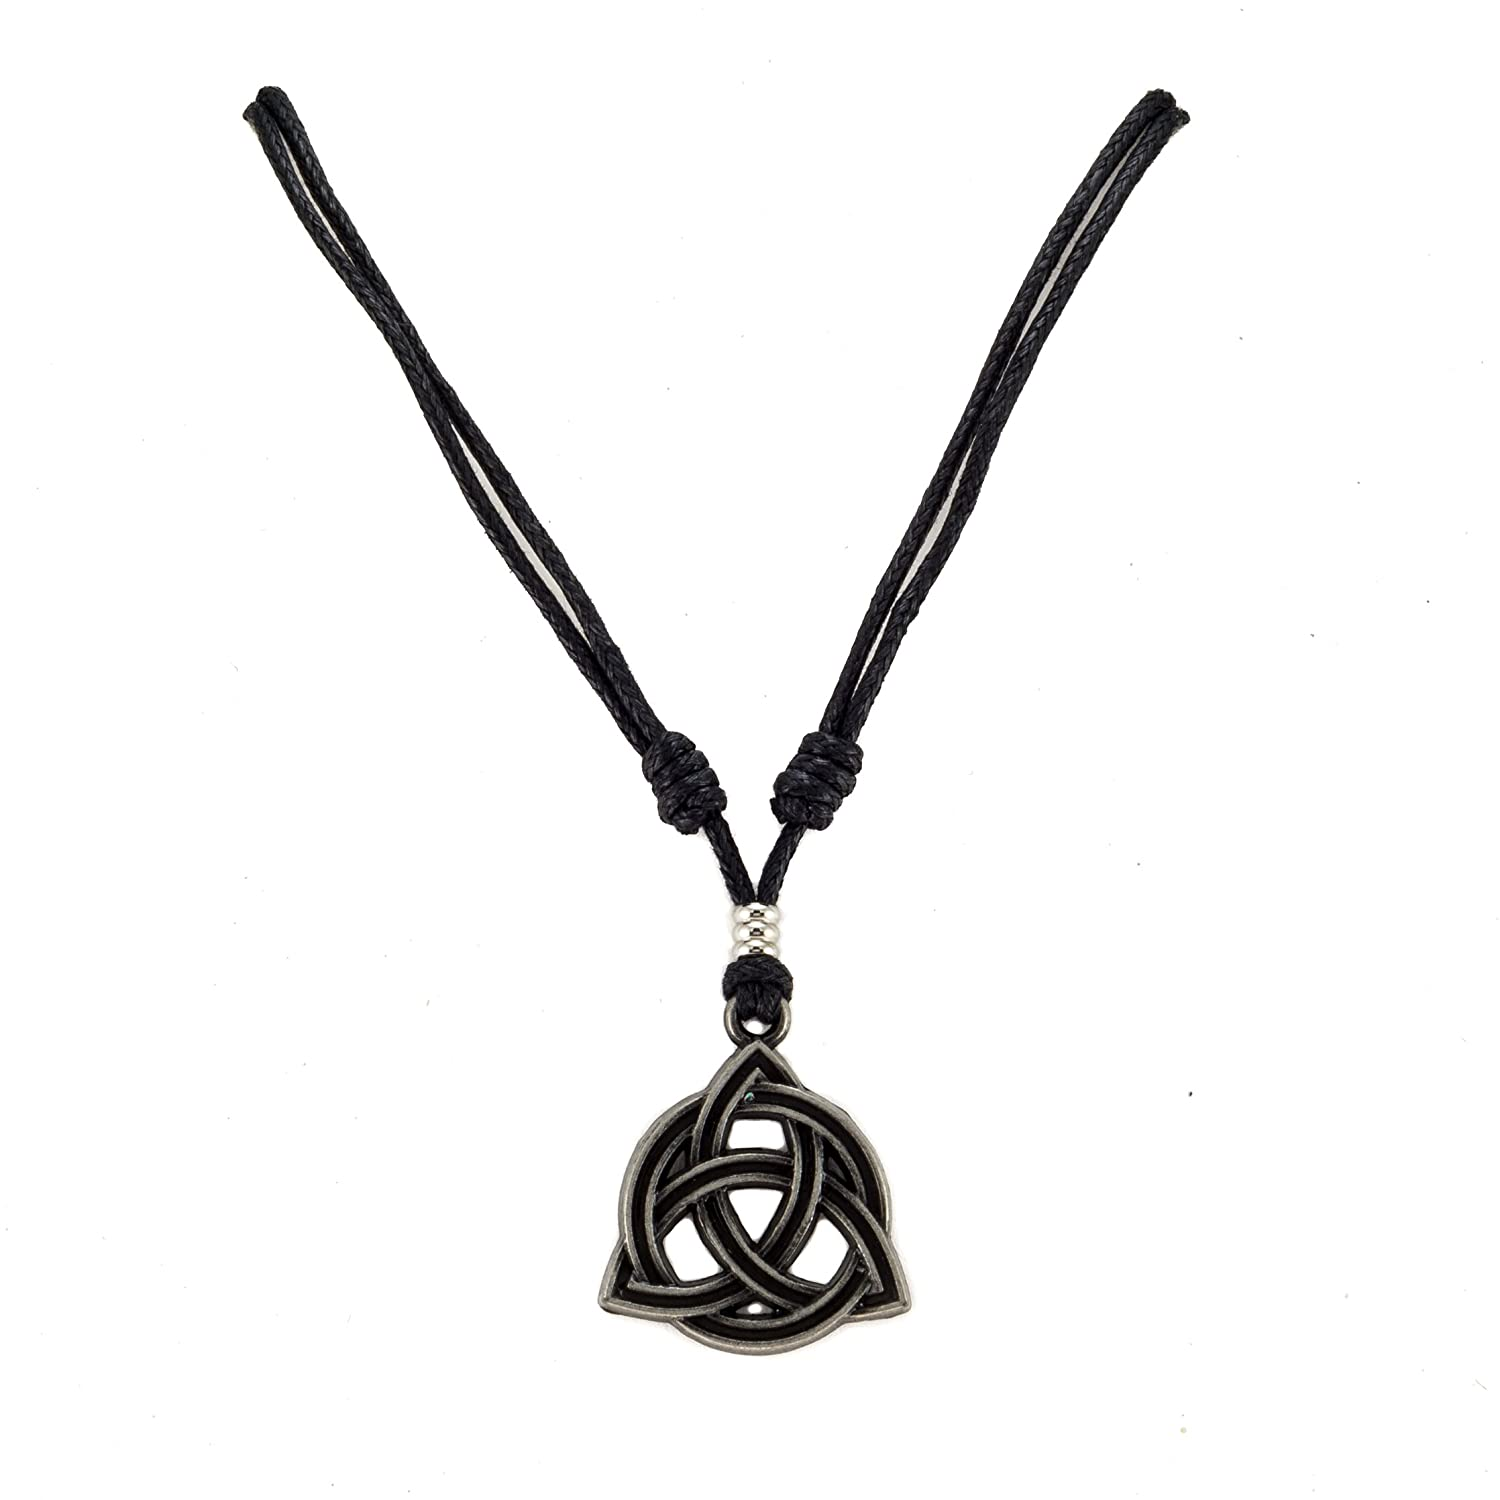 Metal Celtic Trinity Knot Triquetra Pendant on Adjustable Black Rope Cord Necklace W BlueRica UK_B0761XJ2JX